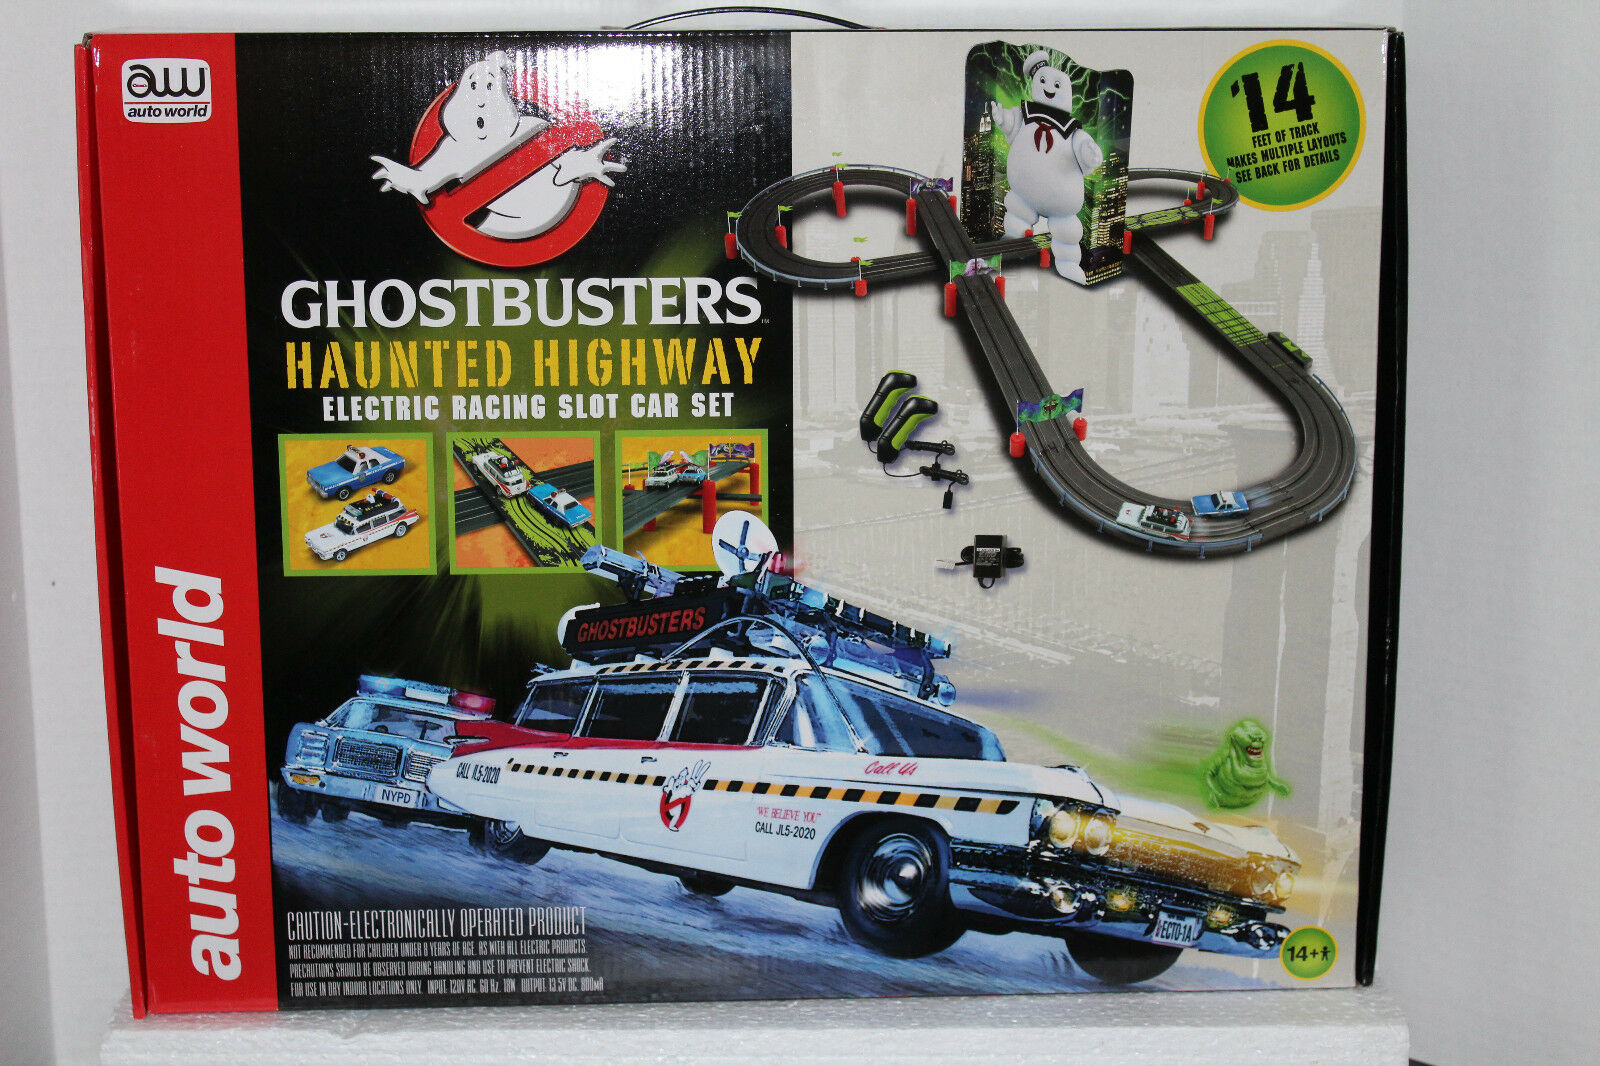 Auto World Ghostbusters Ghostbusters Ghostbusters carrera Set  SRS260  el mas reciente